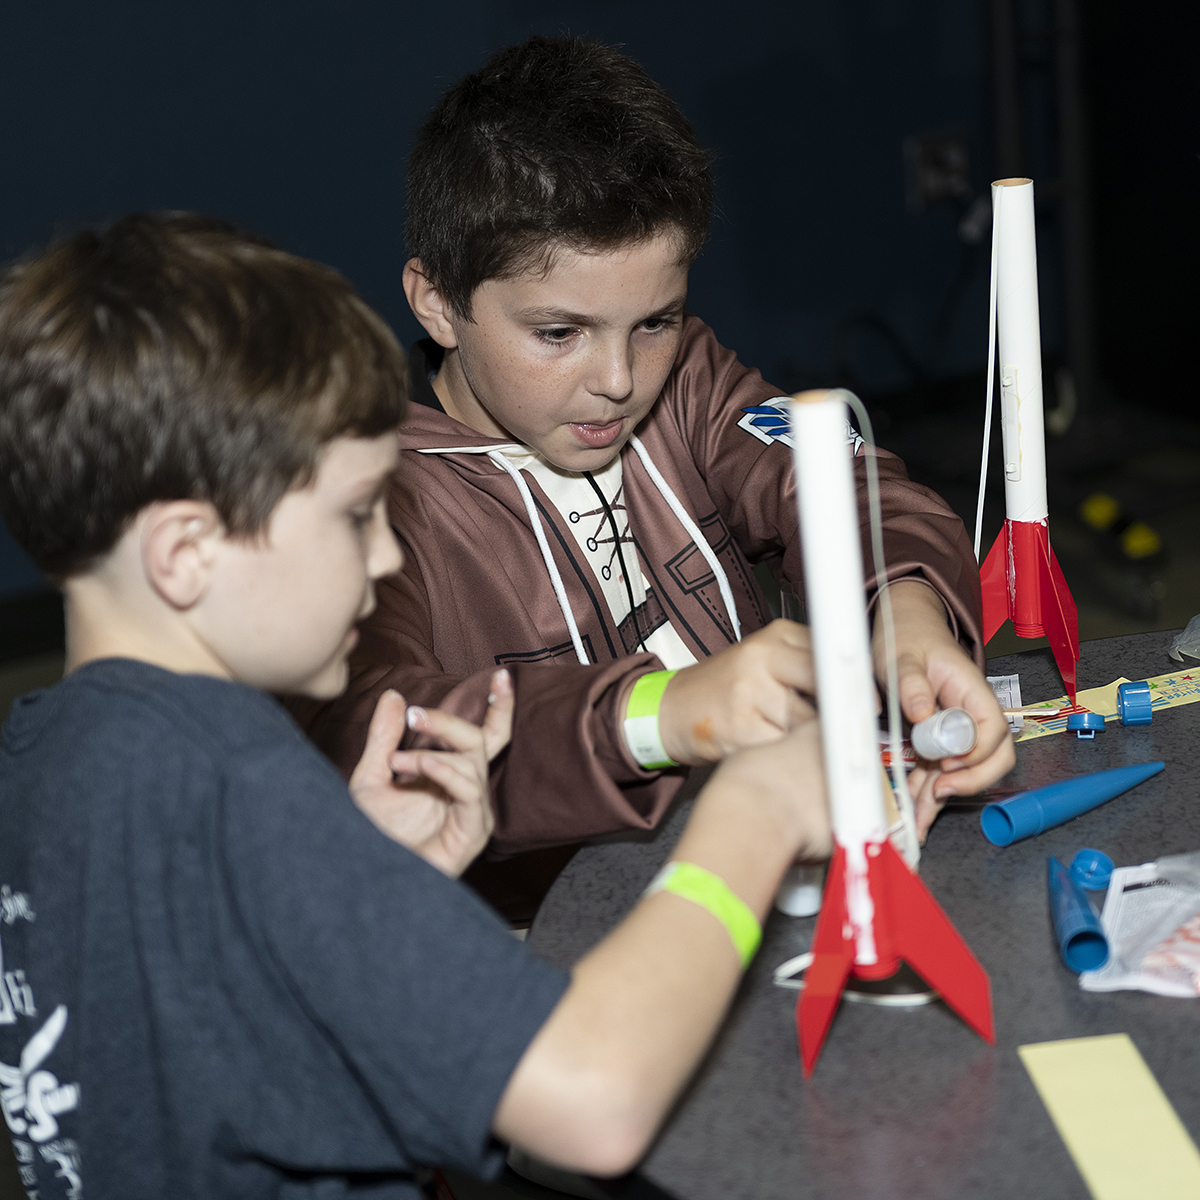 Kids assemble model rockets.